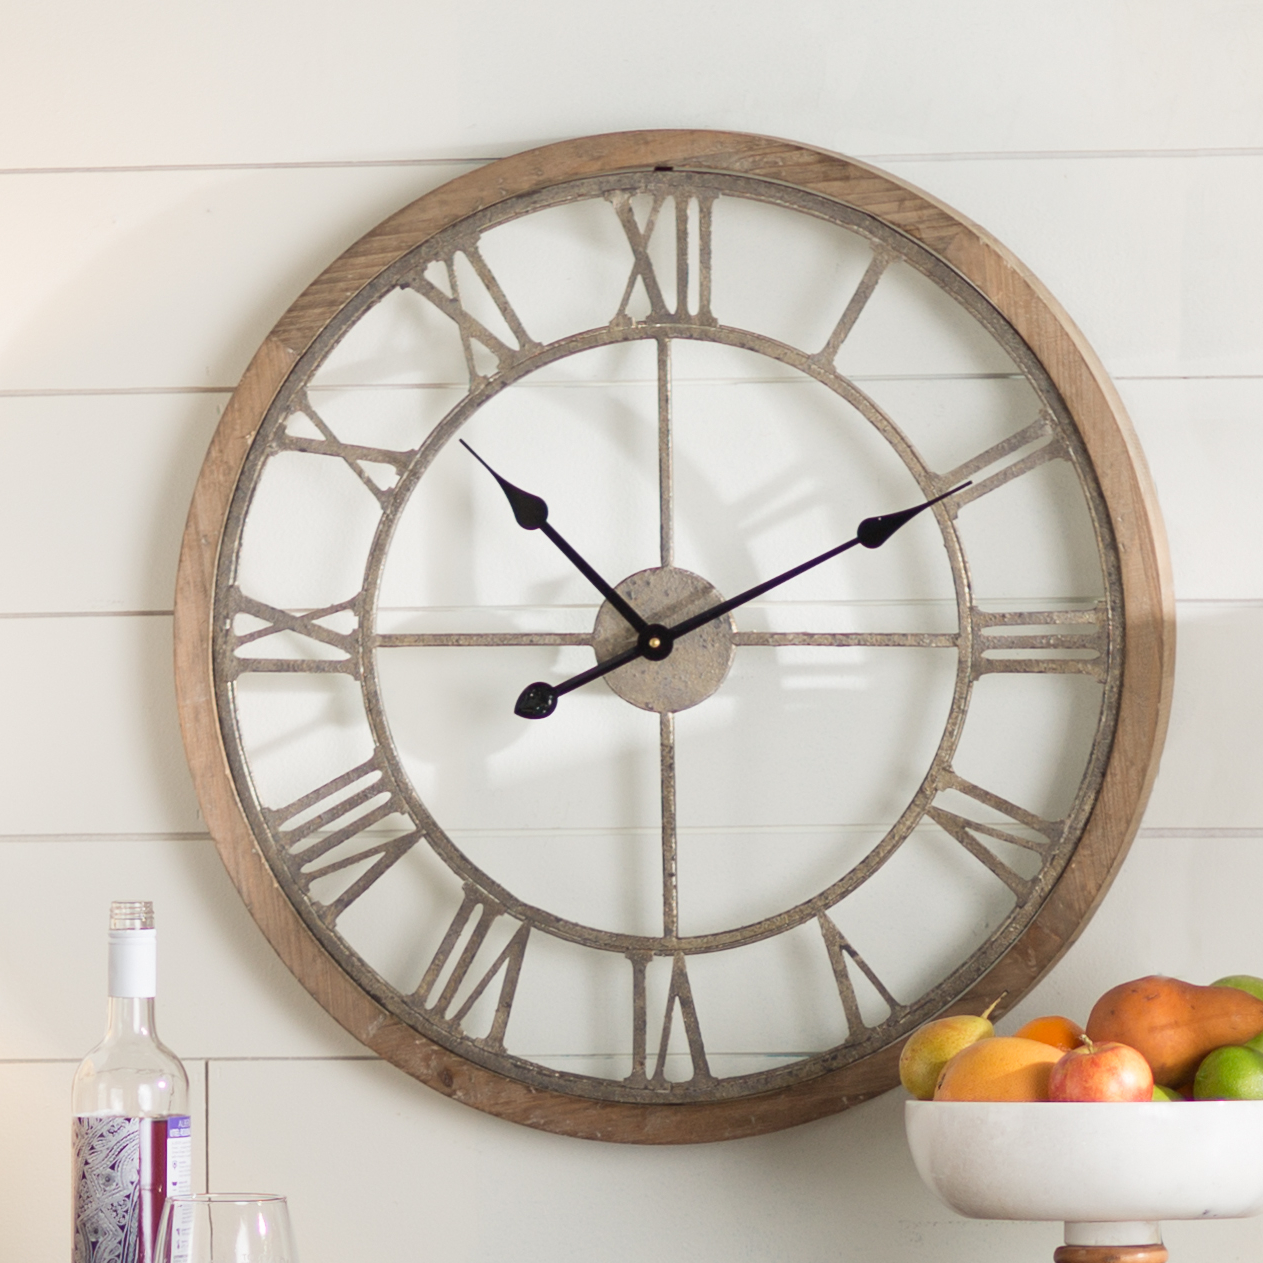 Belle Circular Scroll Wall Decor Throughout Fashionable Wall Decor (View 3 of 20)